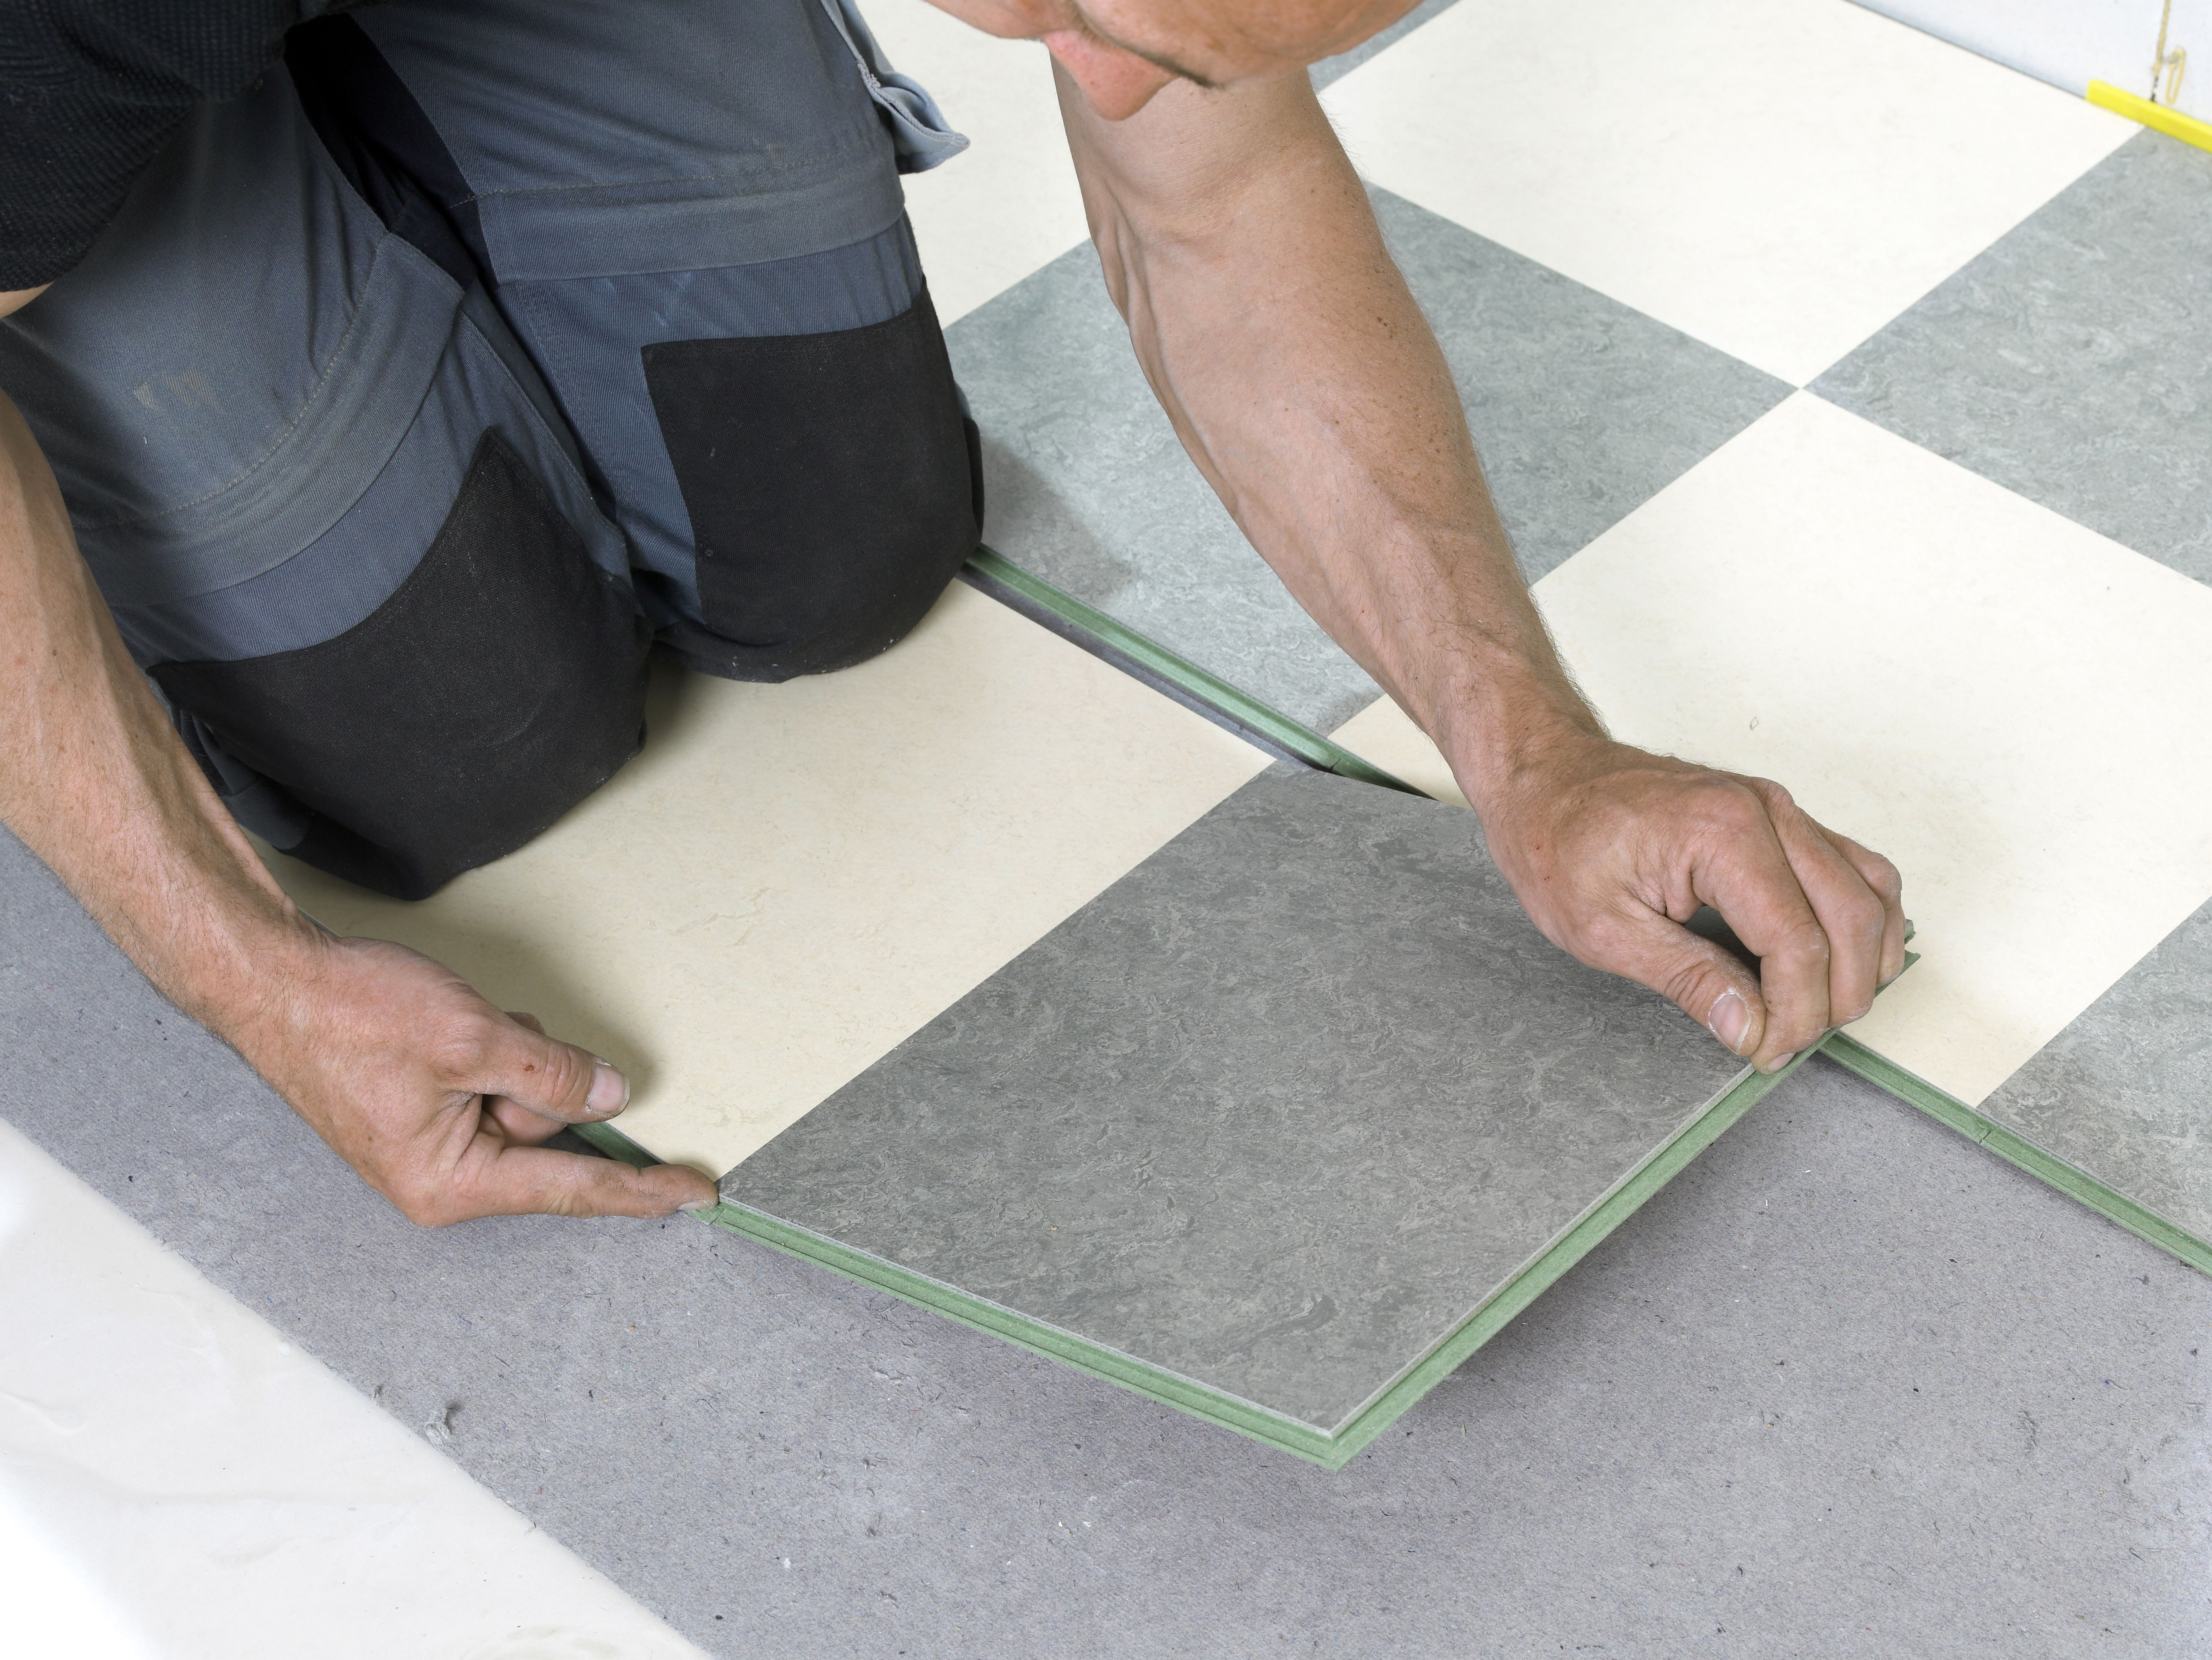 How To Install Sheet Vinyl Flooring Over Tile Bless Er House Vinyl Flooring Vinyl Flooring Kitchen Vinyl Flooring Bathroom